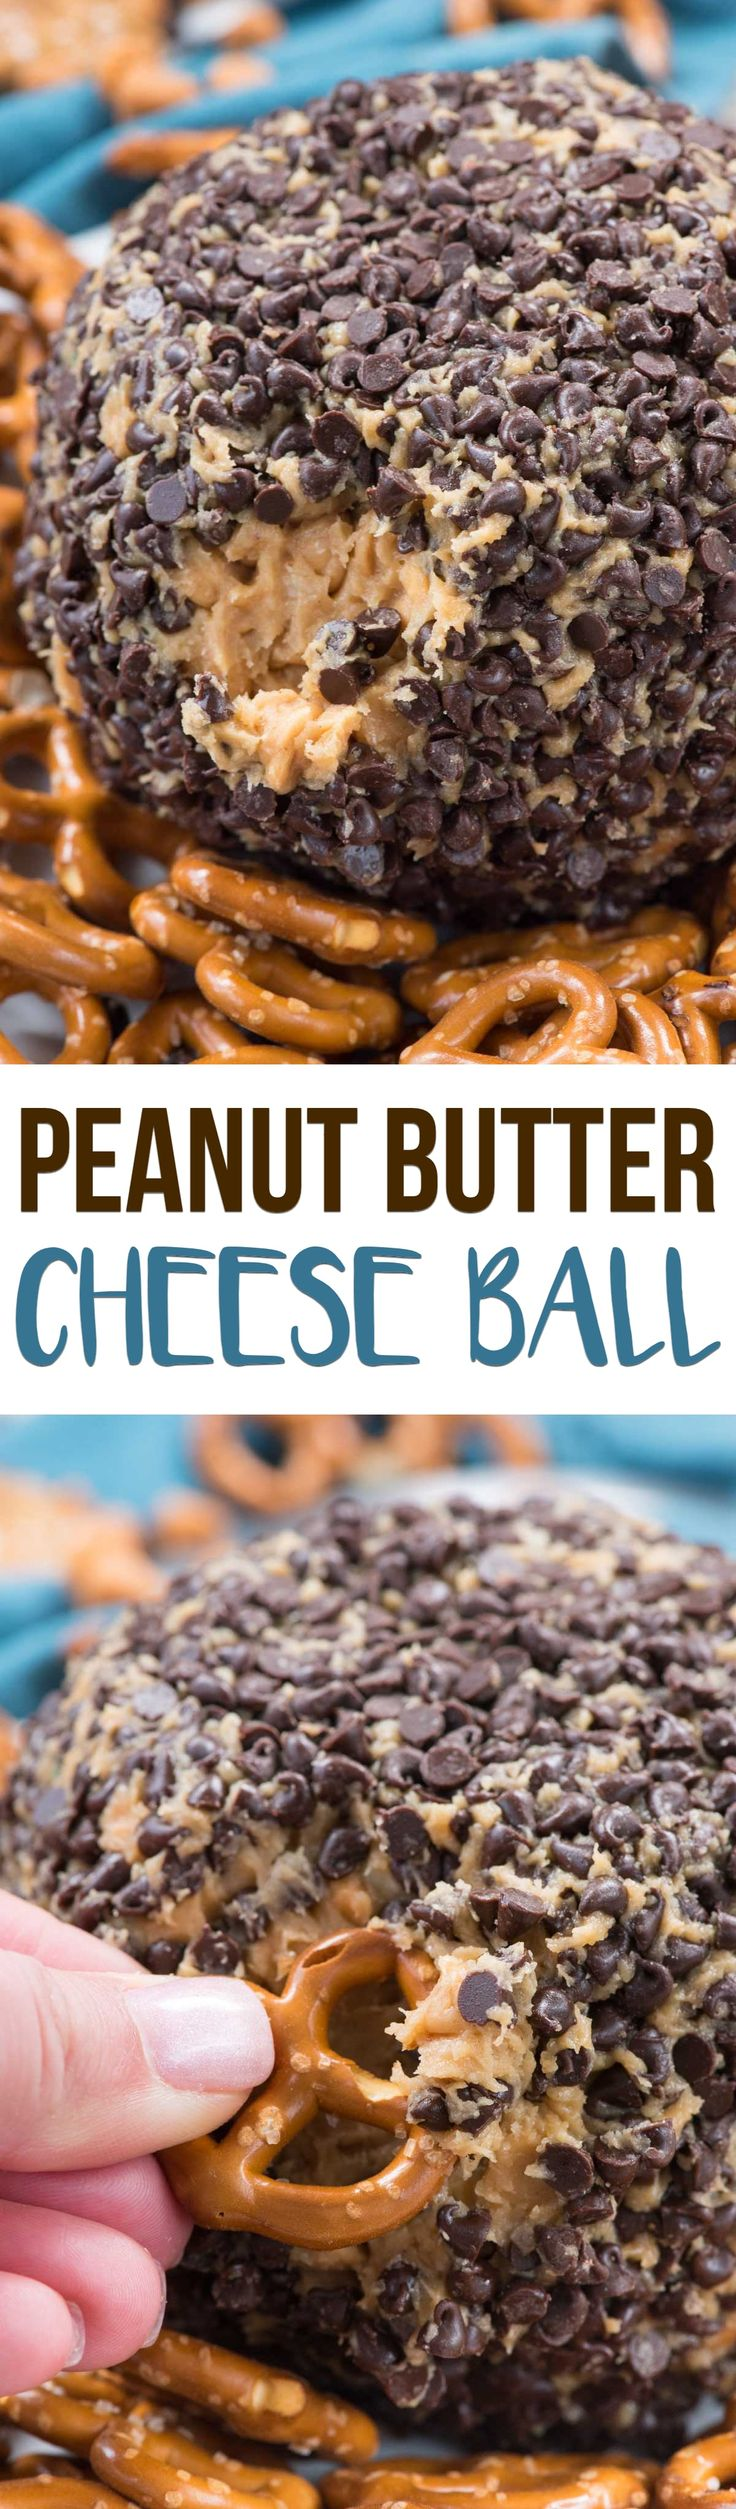 Peanut Butter Cheese Ball Dip is an EASY dessert dip recipe for a party! Peanut butter, cream cheese, butter, sugar and LOTS of chocolate make this the perfect addicting dip recipe for any occasion. via @crazyforcrust